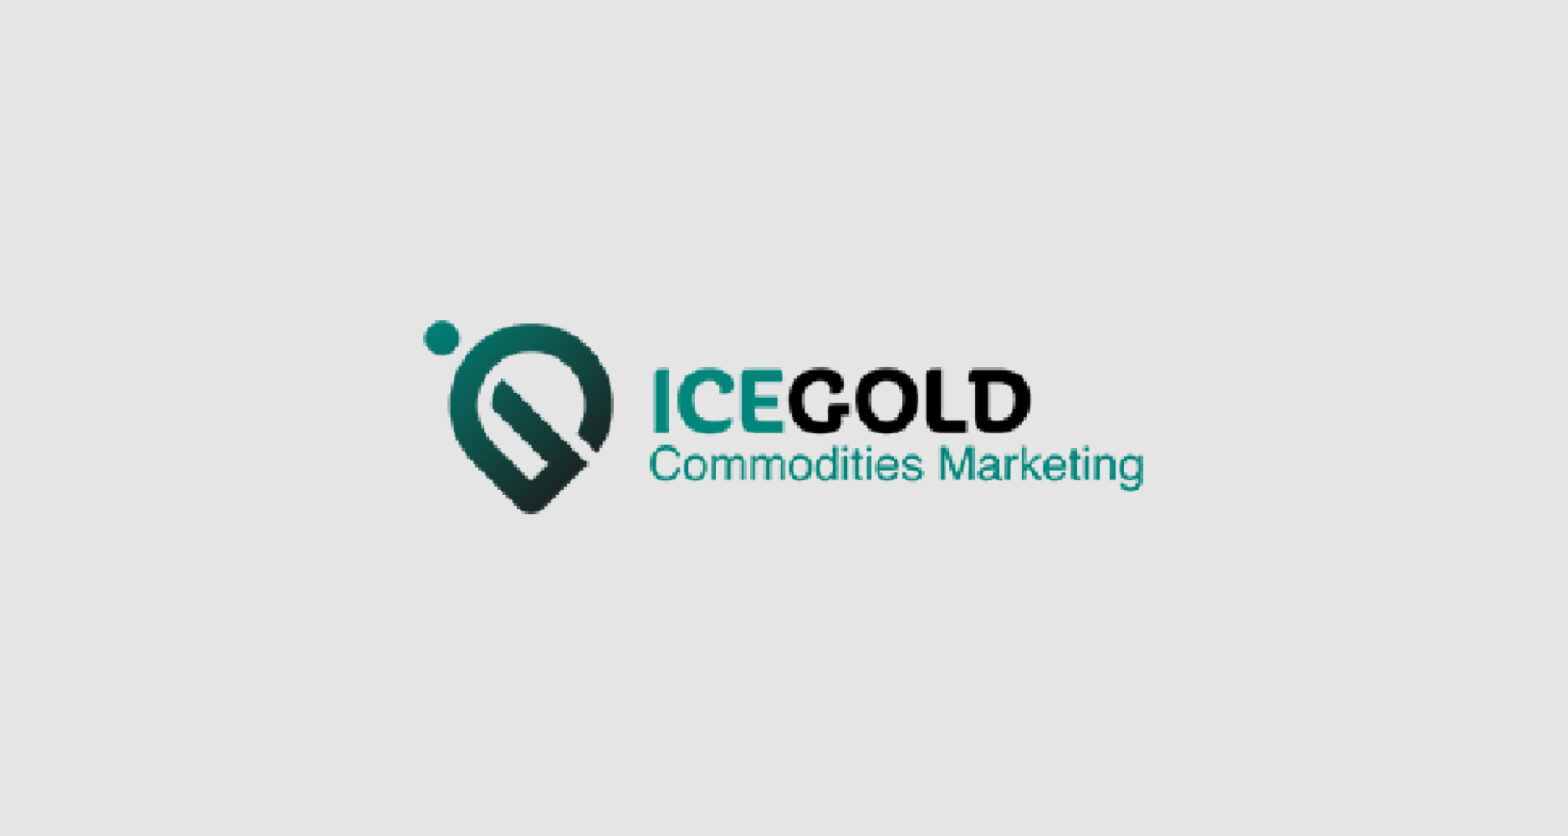 Icegold Marketing joins CWEIC